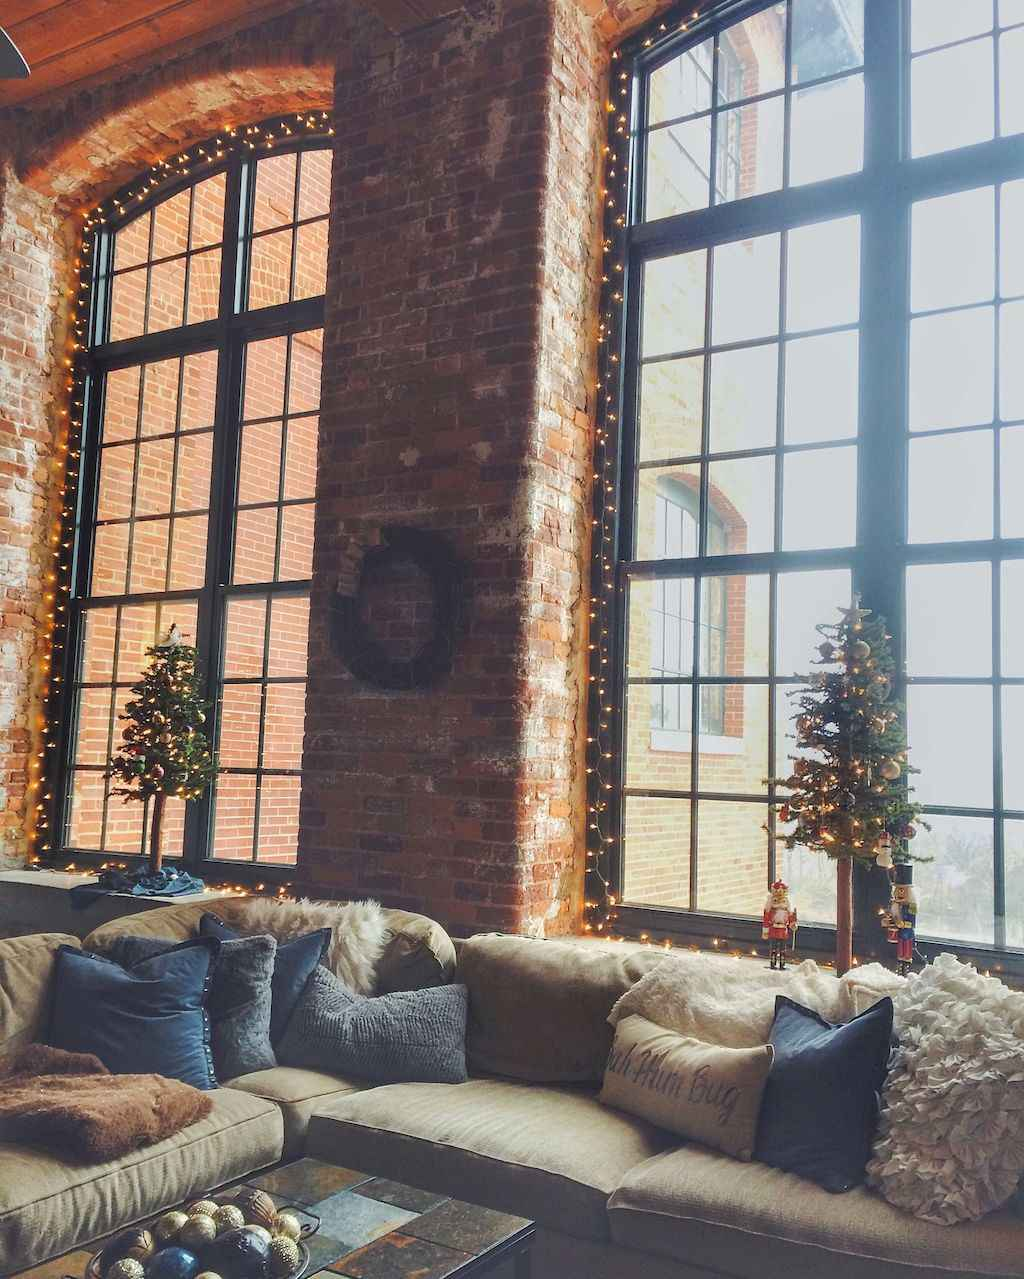 Cozy apartment decorating ideas on a budget (18)